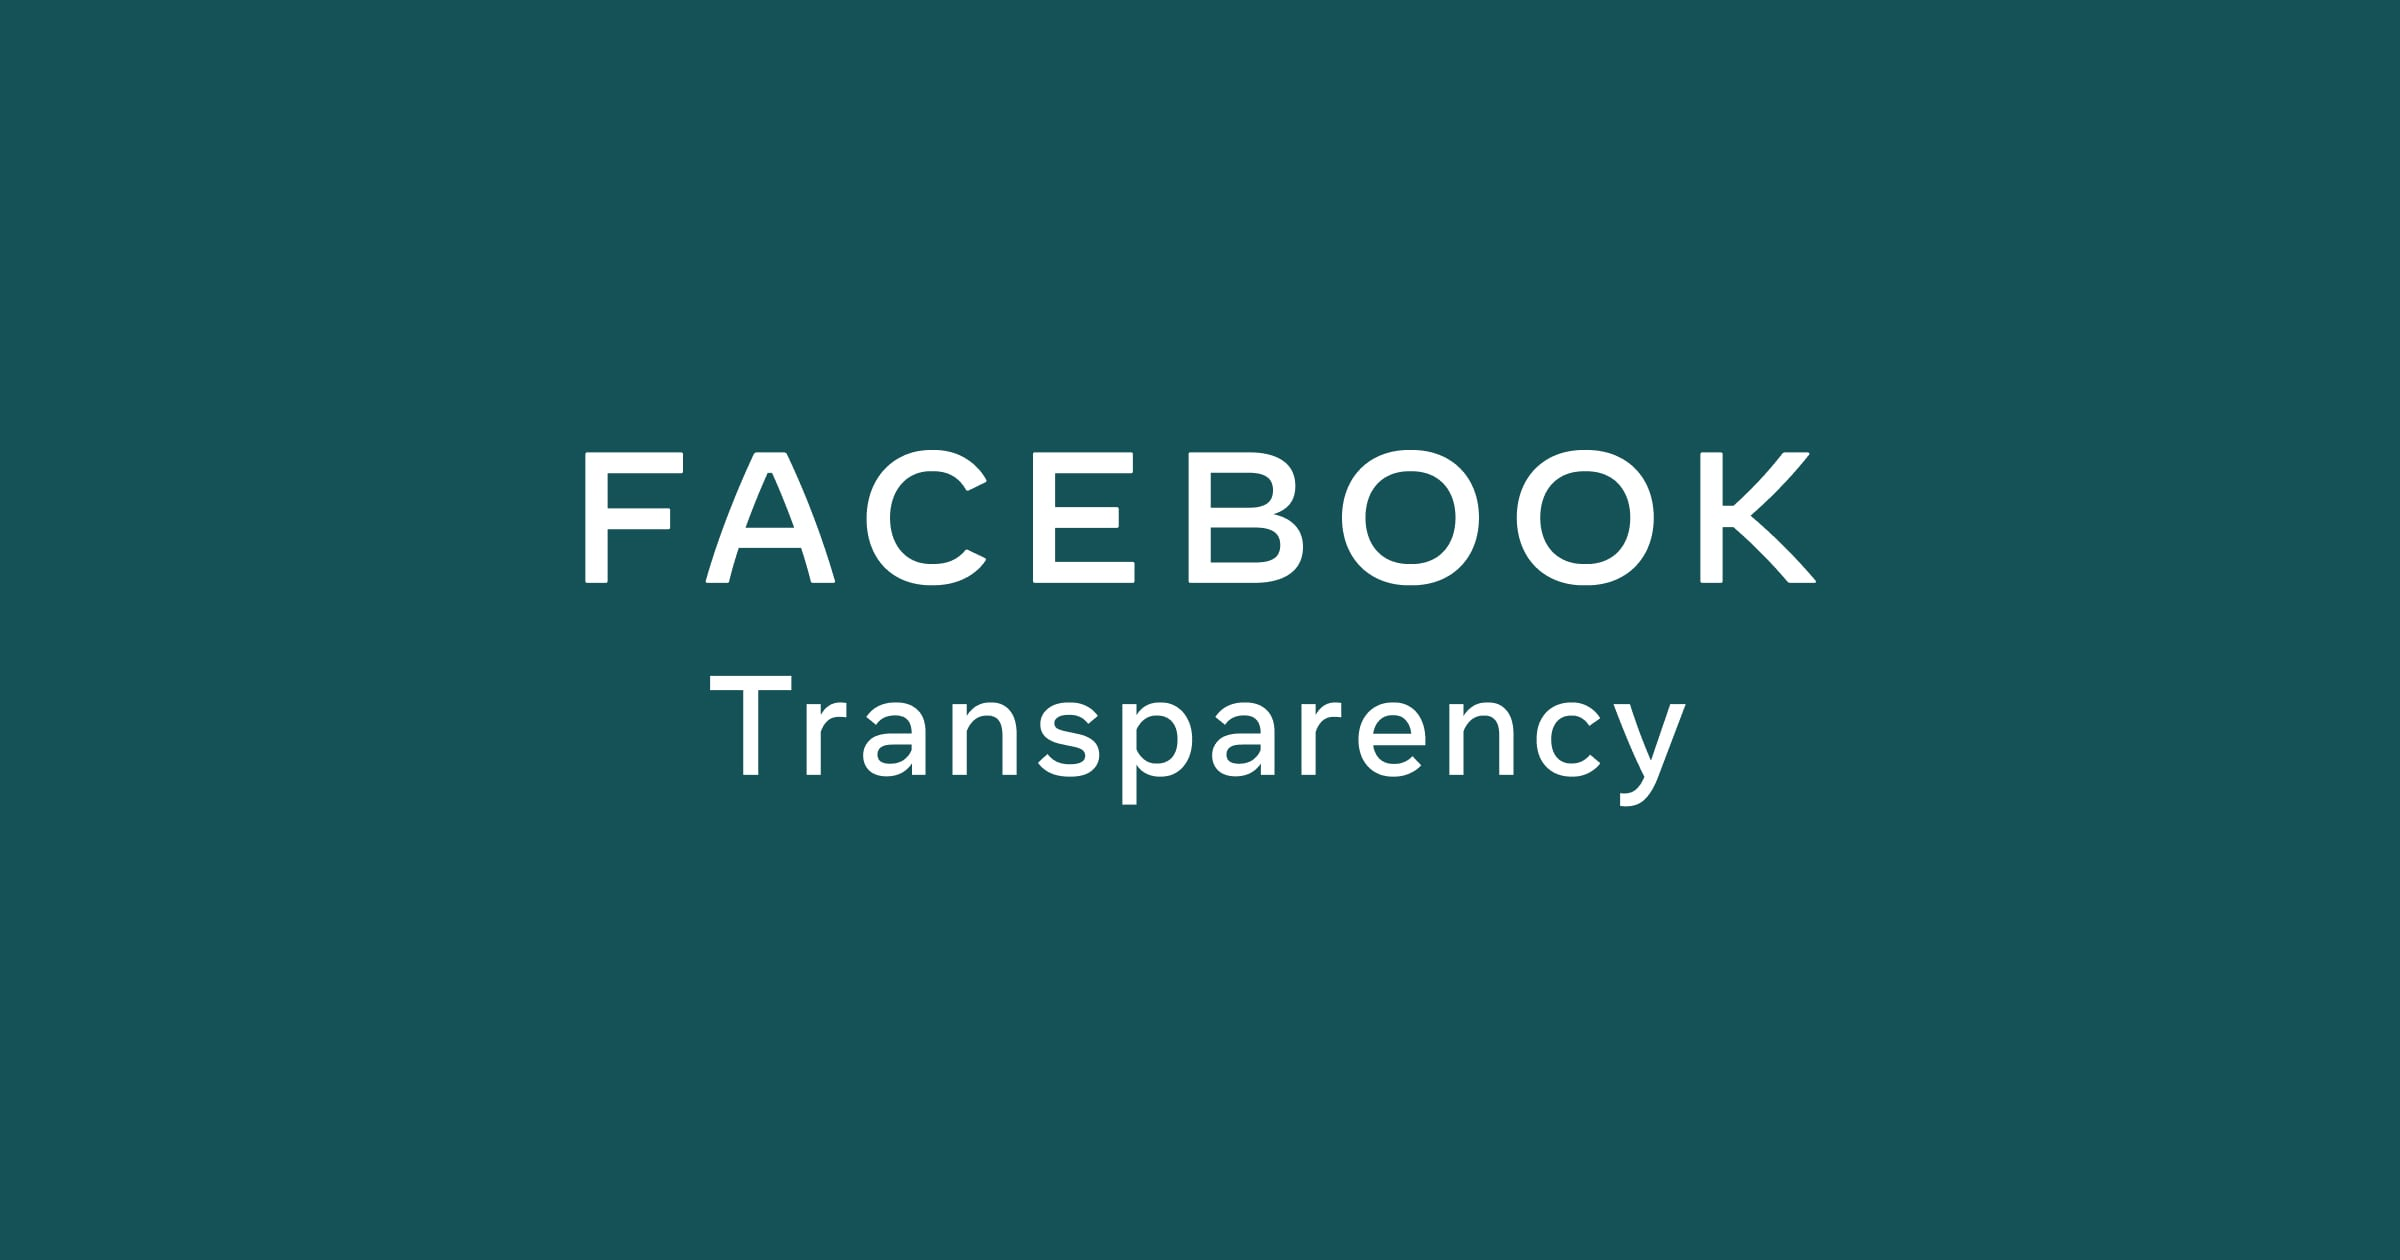 Quarterly report on what people see on Facebook, including the content that receives the widest distribution during the quarter.